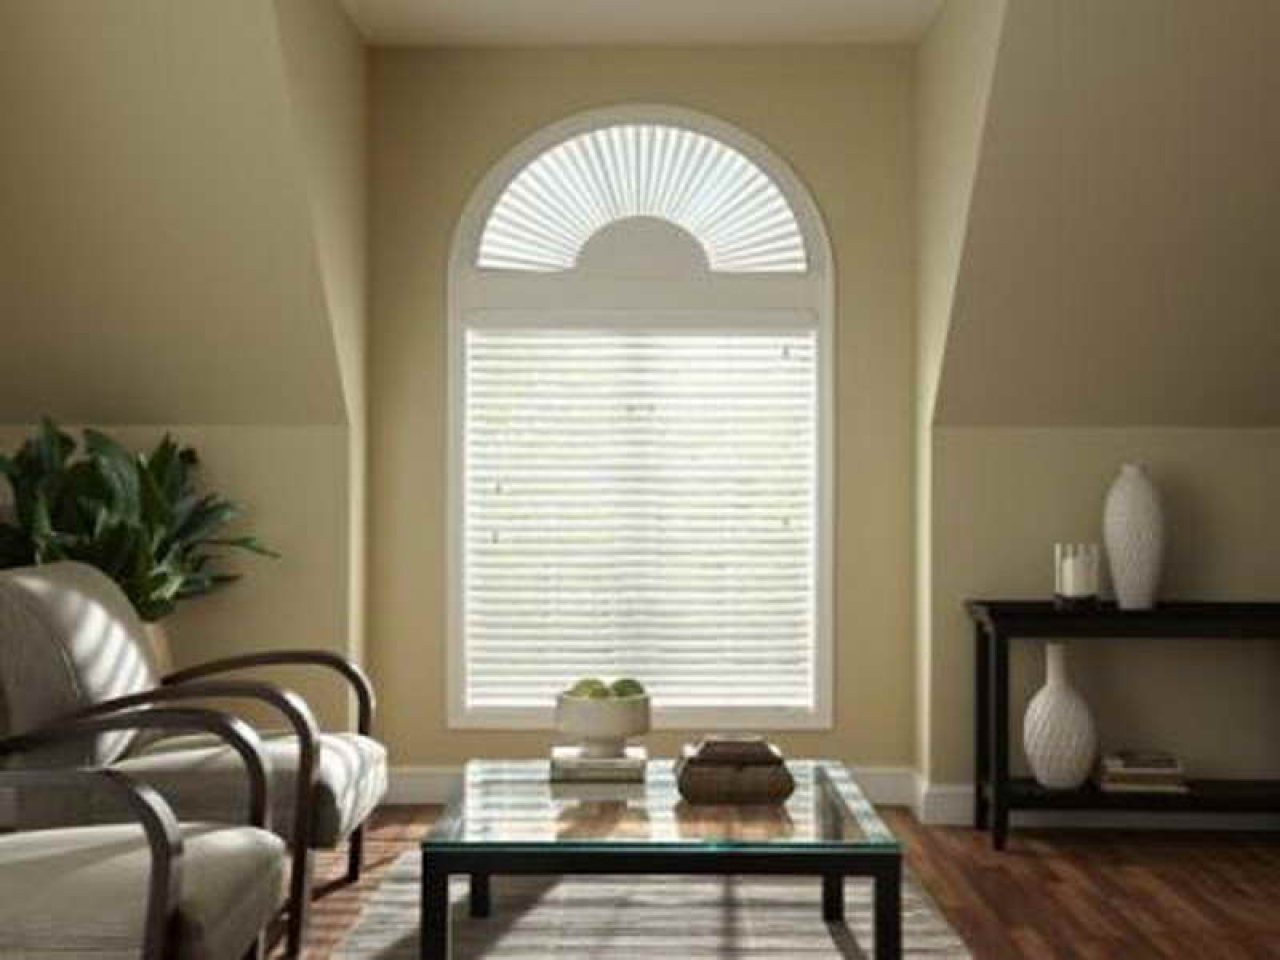 Window cover ideas arch window blinds half arch window